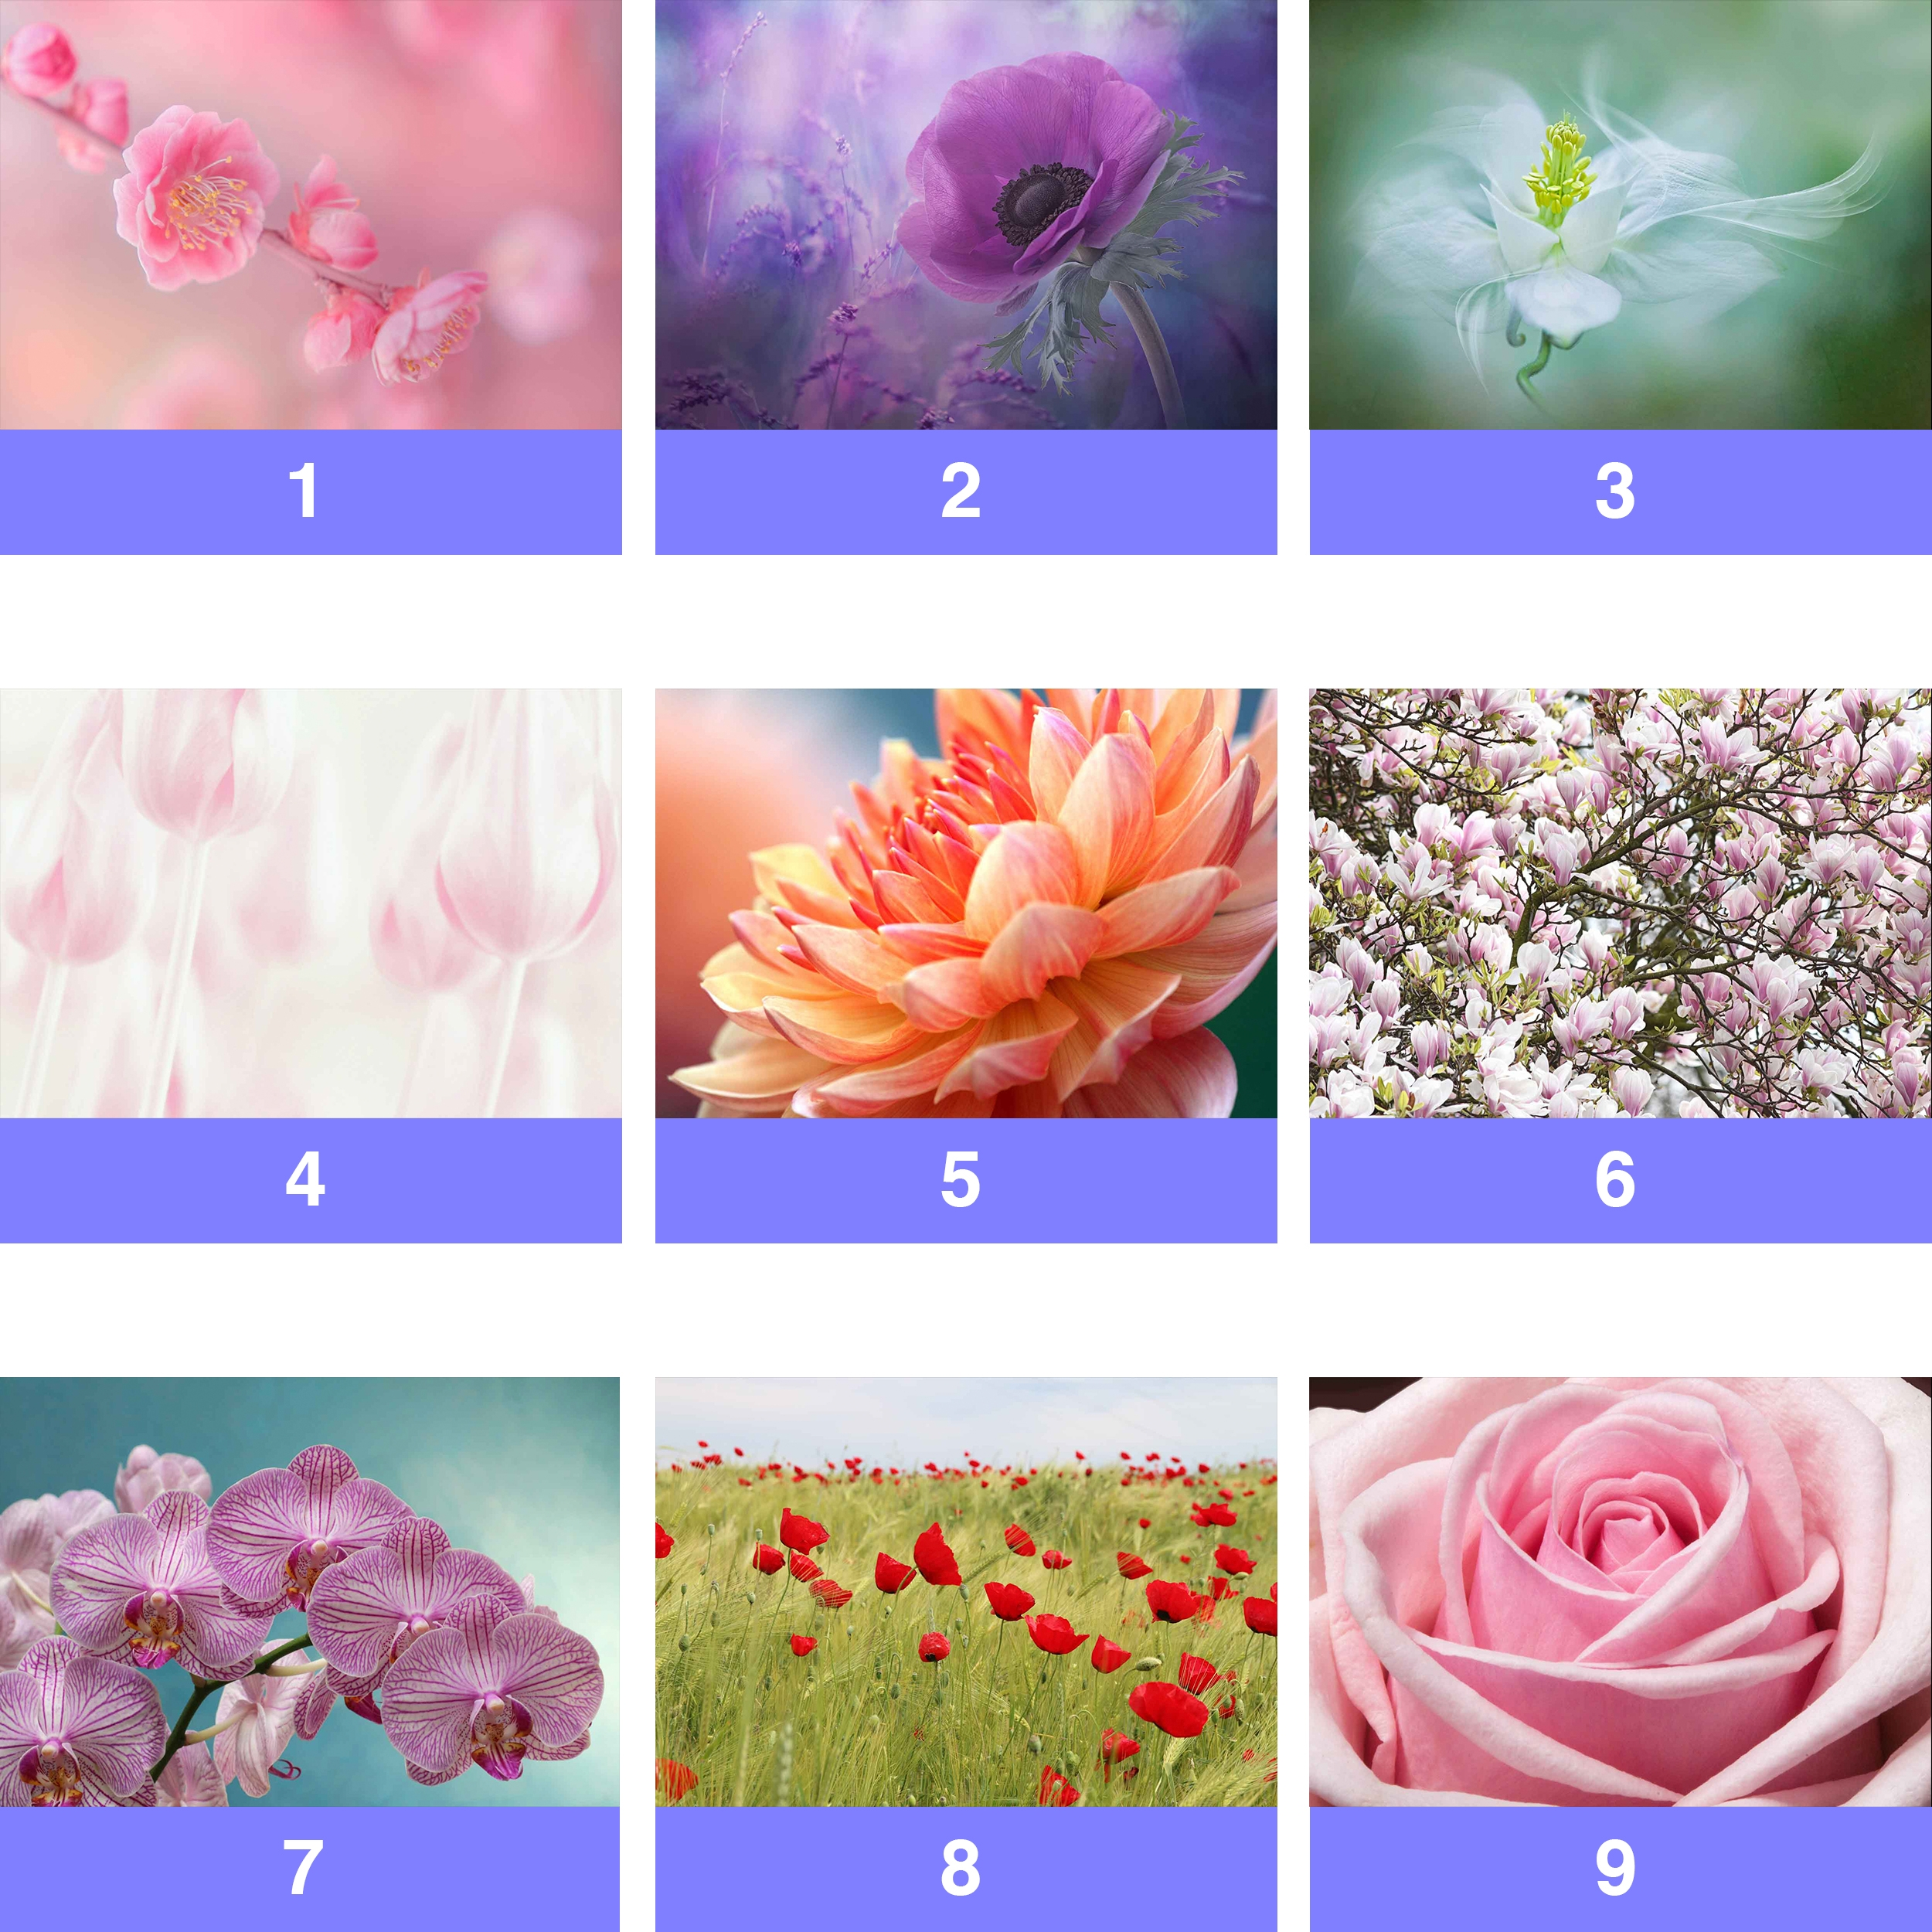 Details About Flowers Floral Rose Blossom Orchid Wall Mural Photo Wallpaper Fl Wm